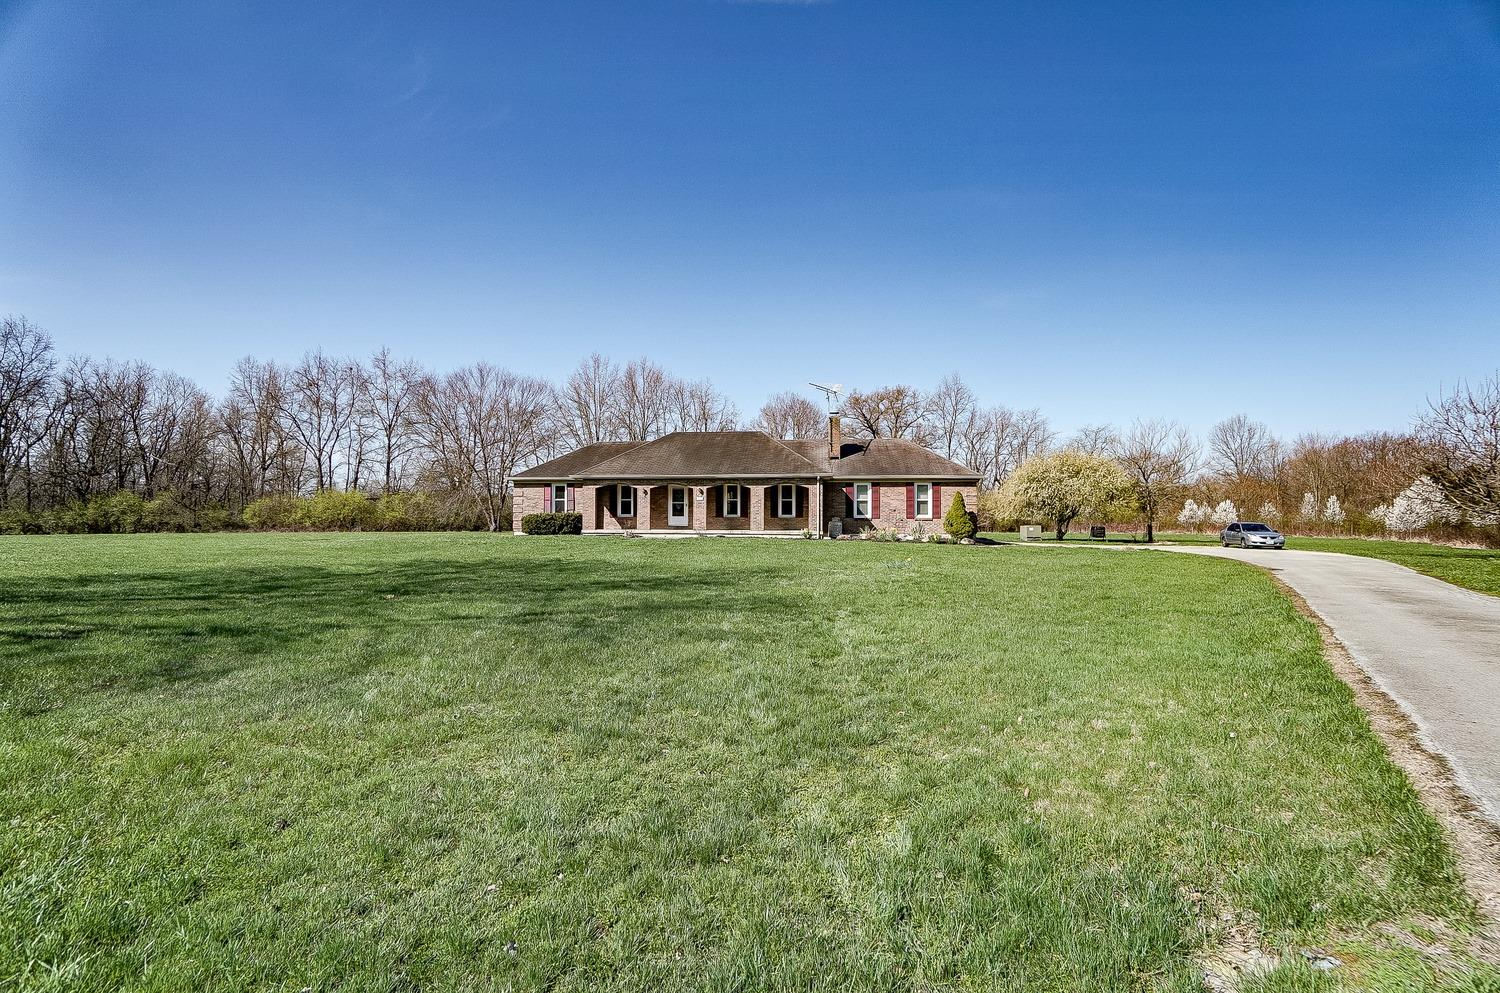 7971 Achterman Rd Harlan Twp OH